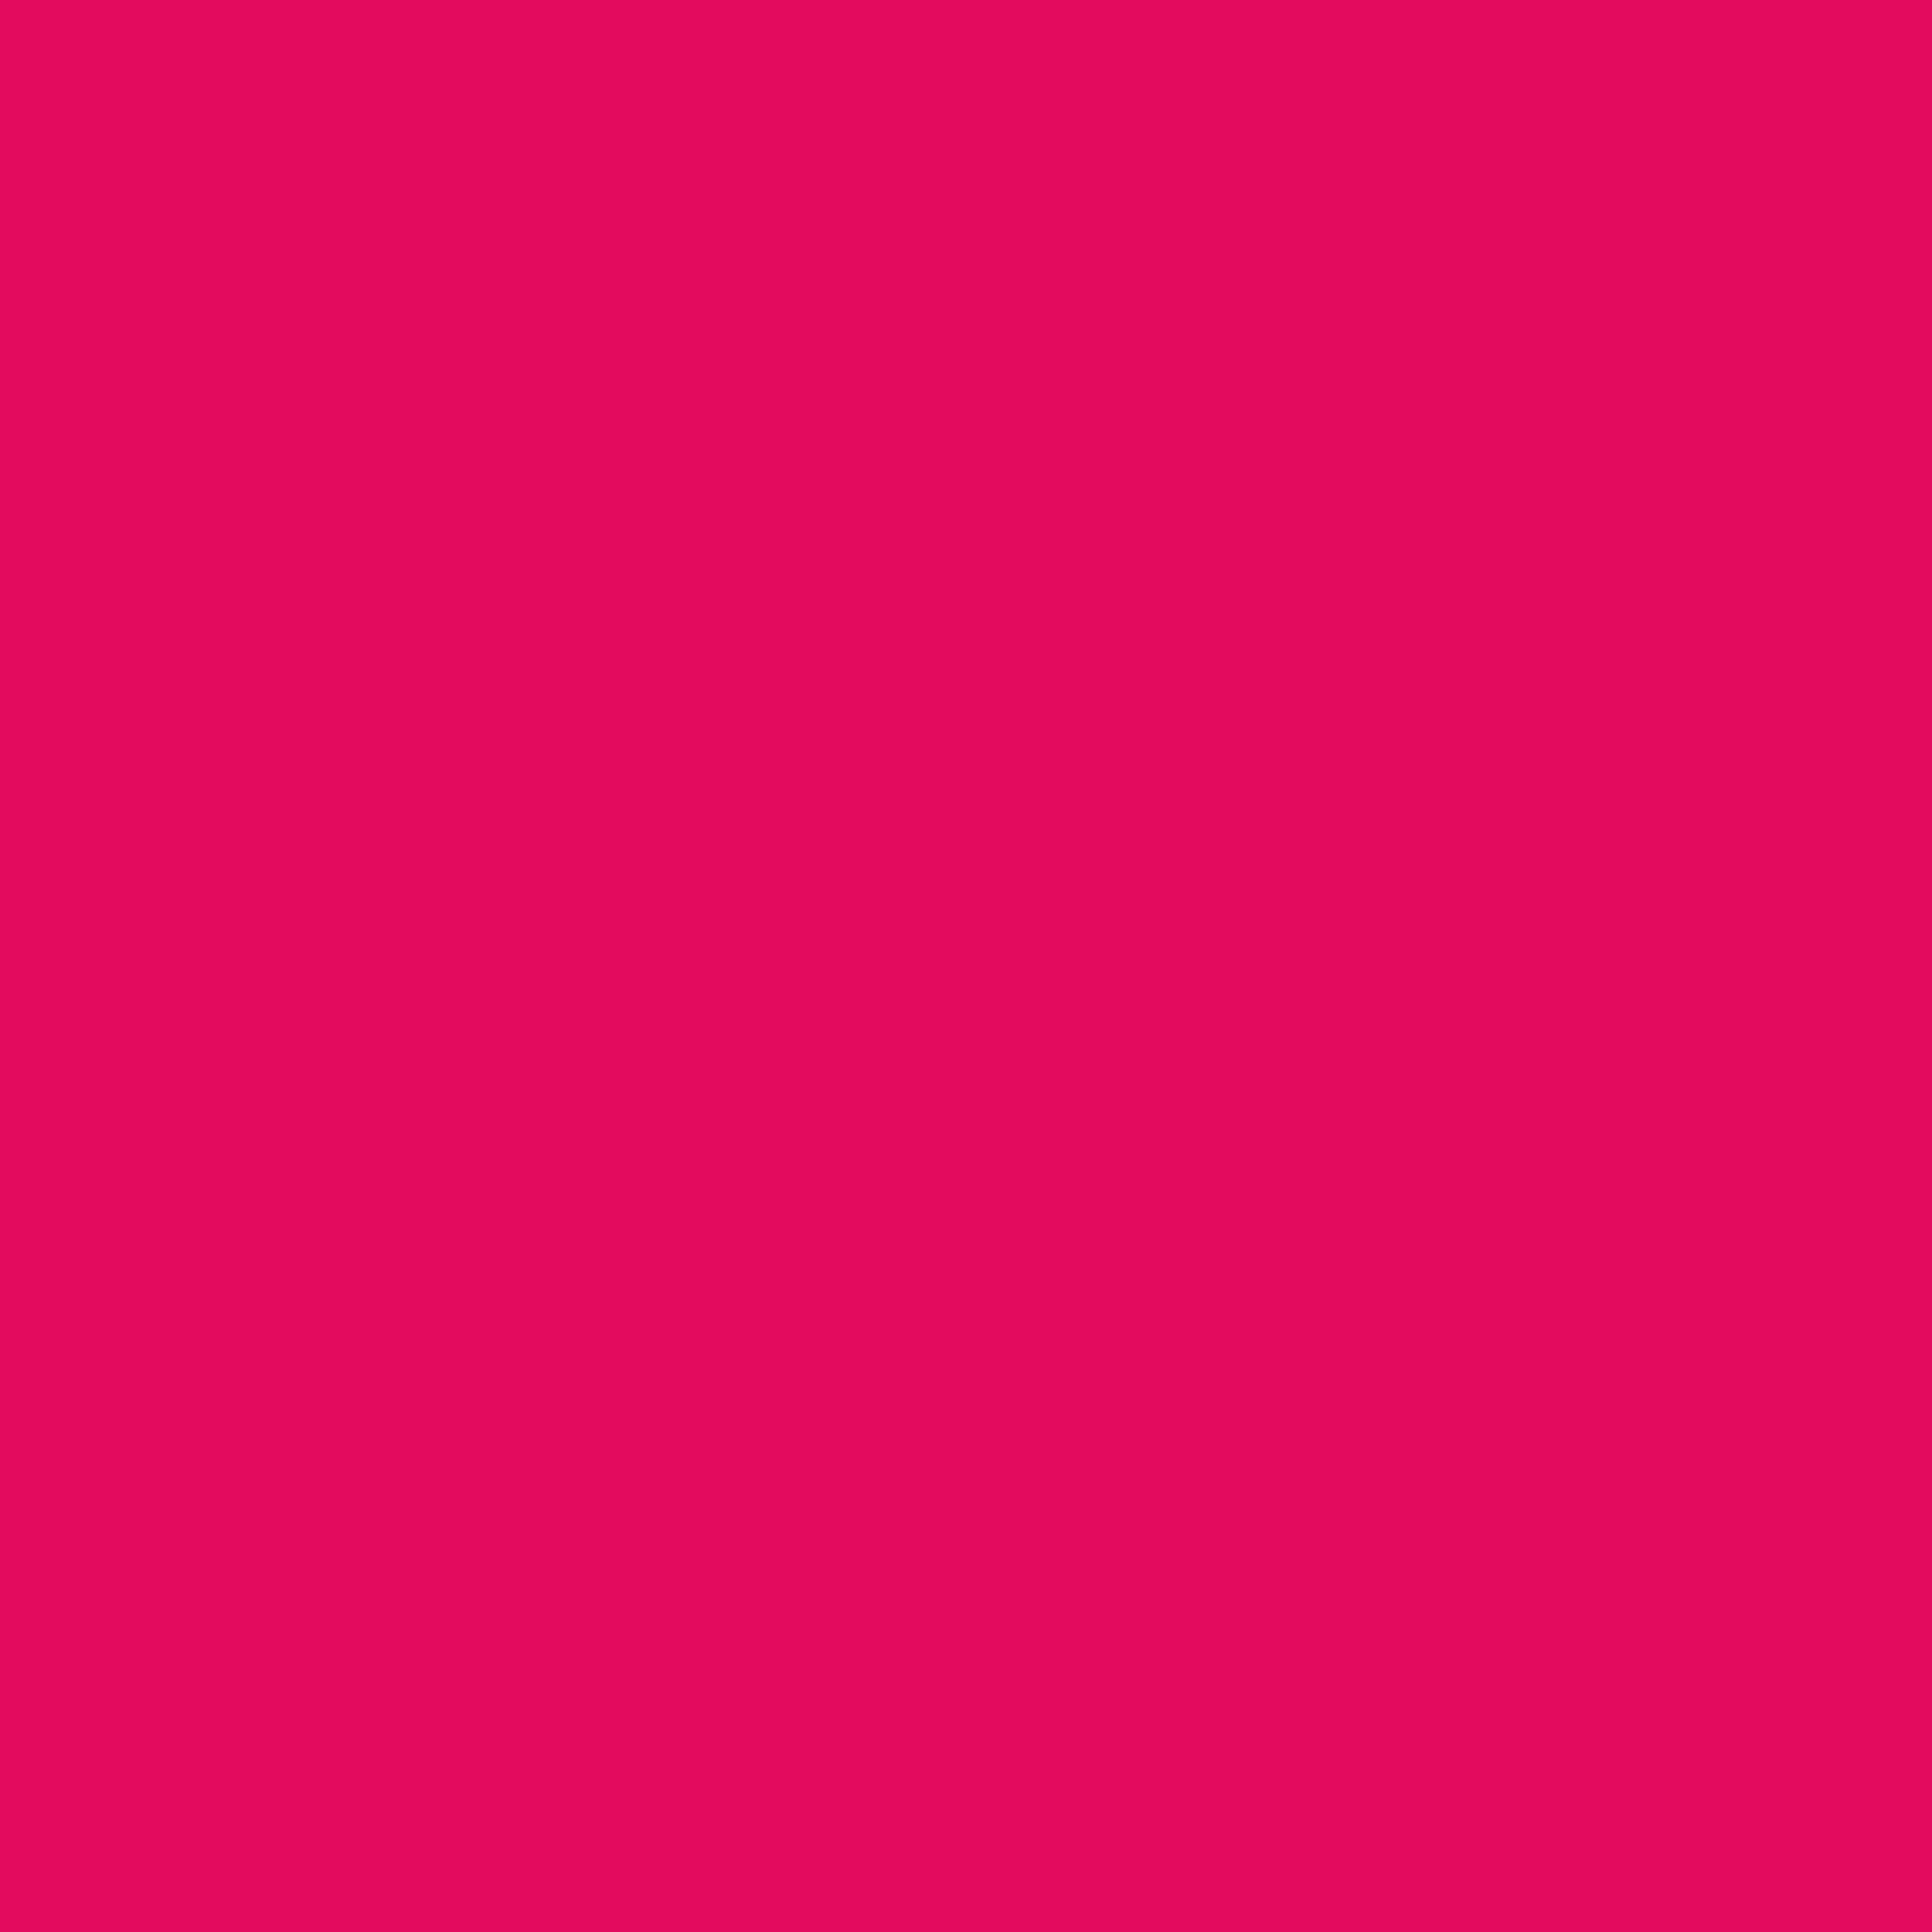 3600x3600 Raspberry Solid Color Background